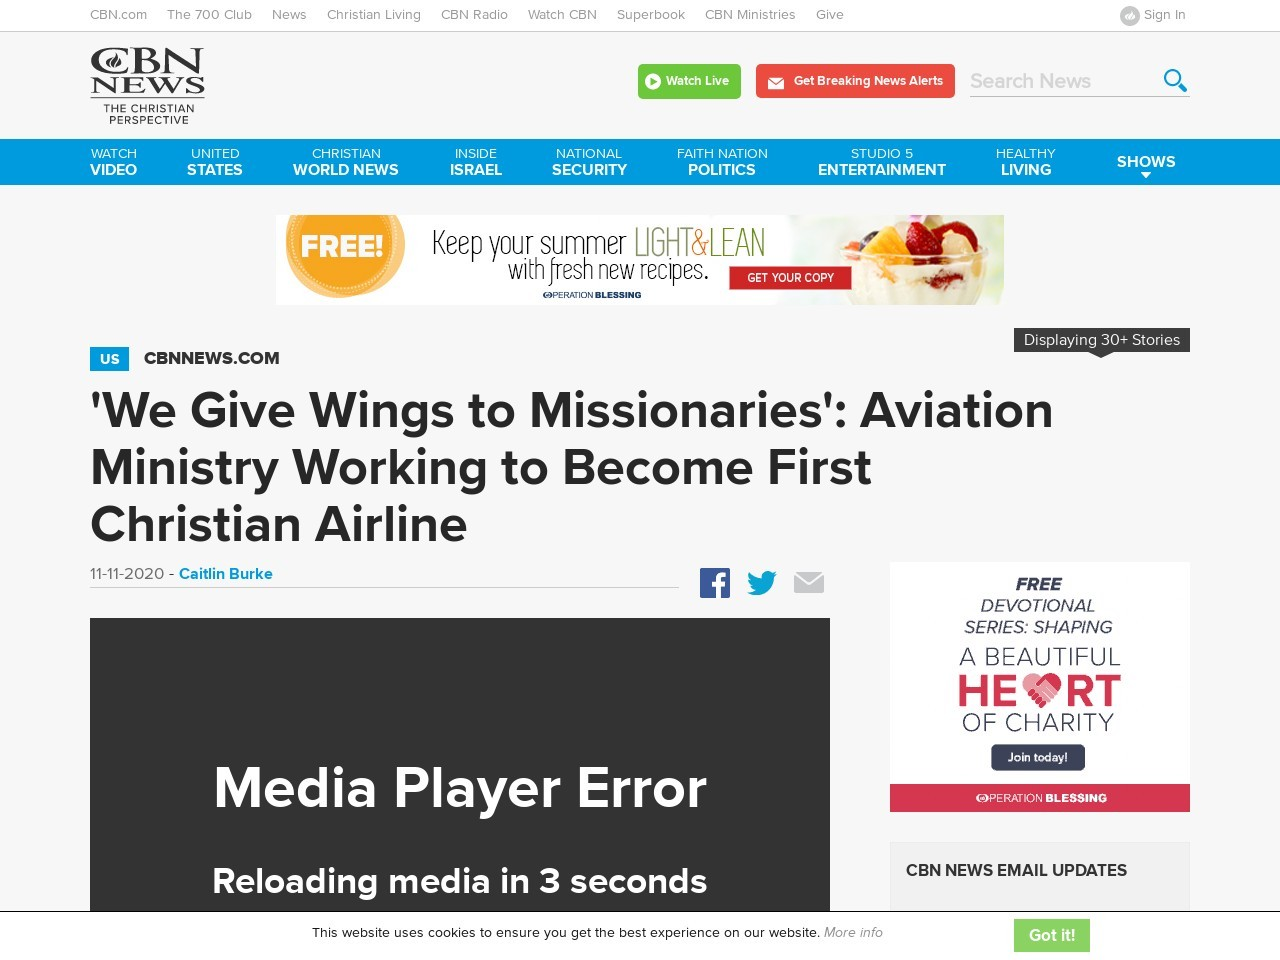 'We Give Wings to Missionaries': Aviation Ministry Working to Become First Christian Airline